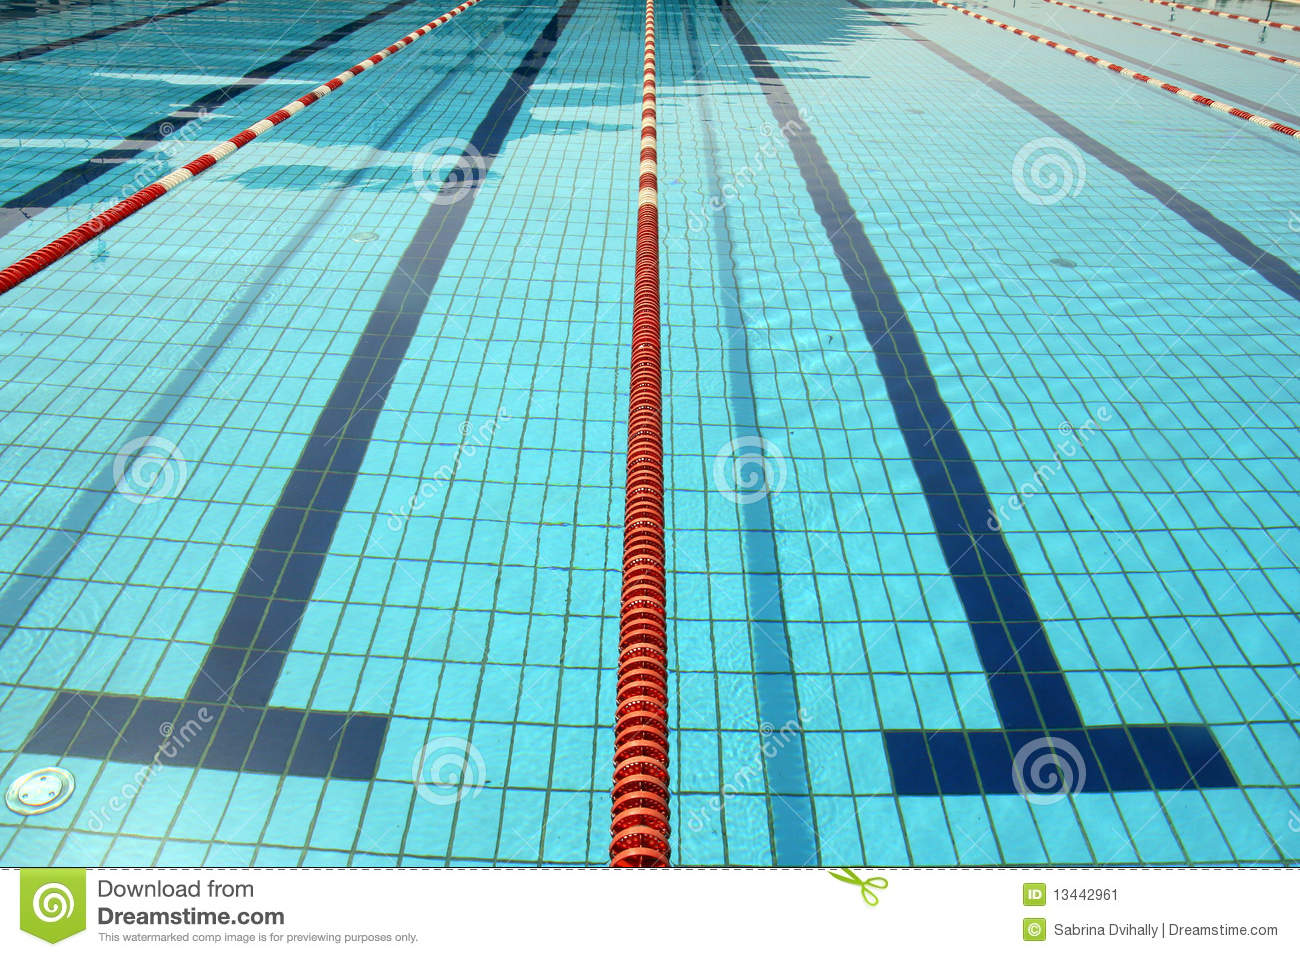 royalty free stock photo download swimming pool lines swimming pool lane lines background